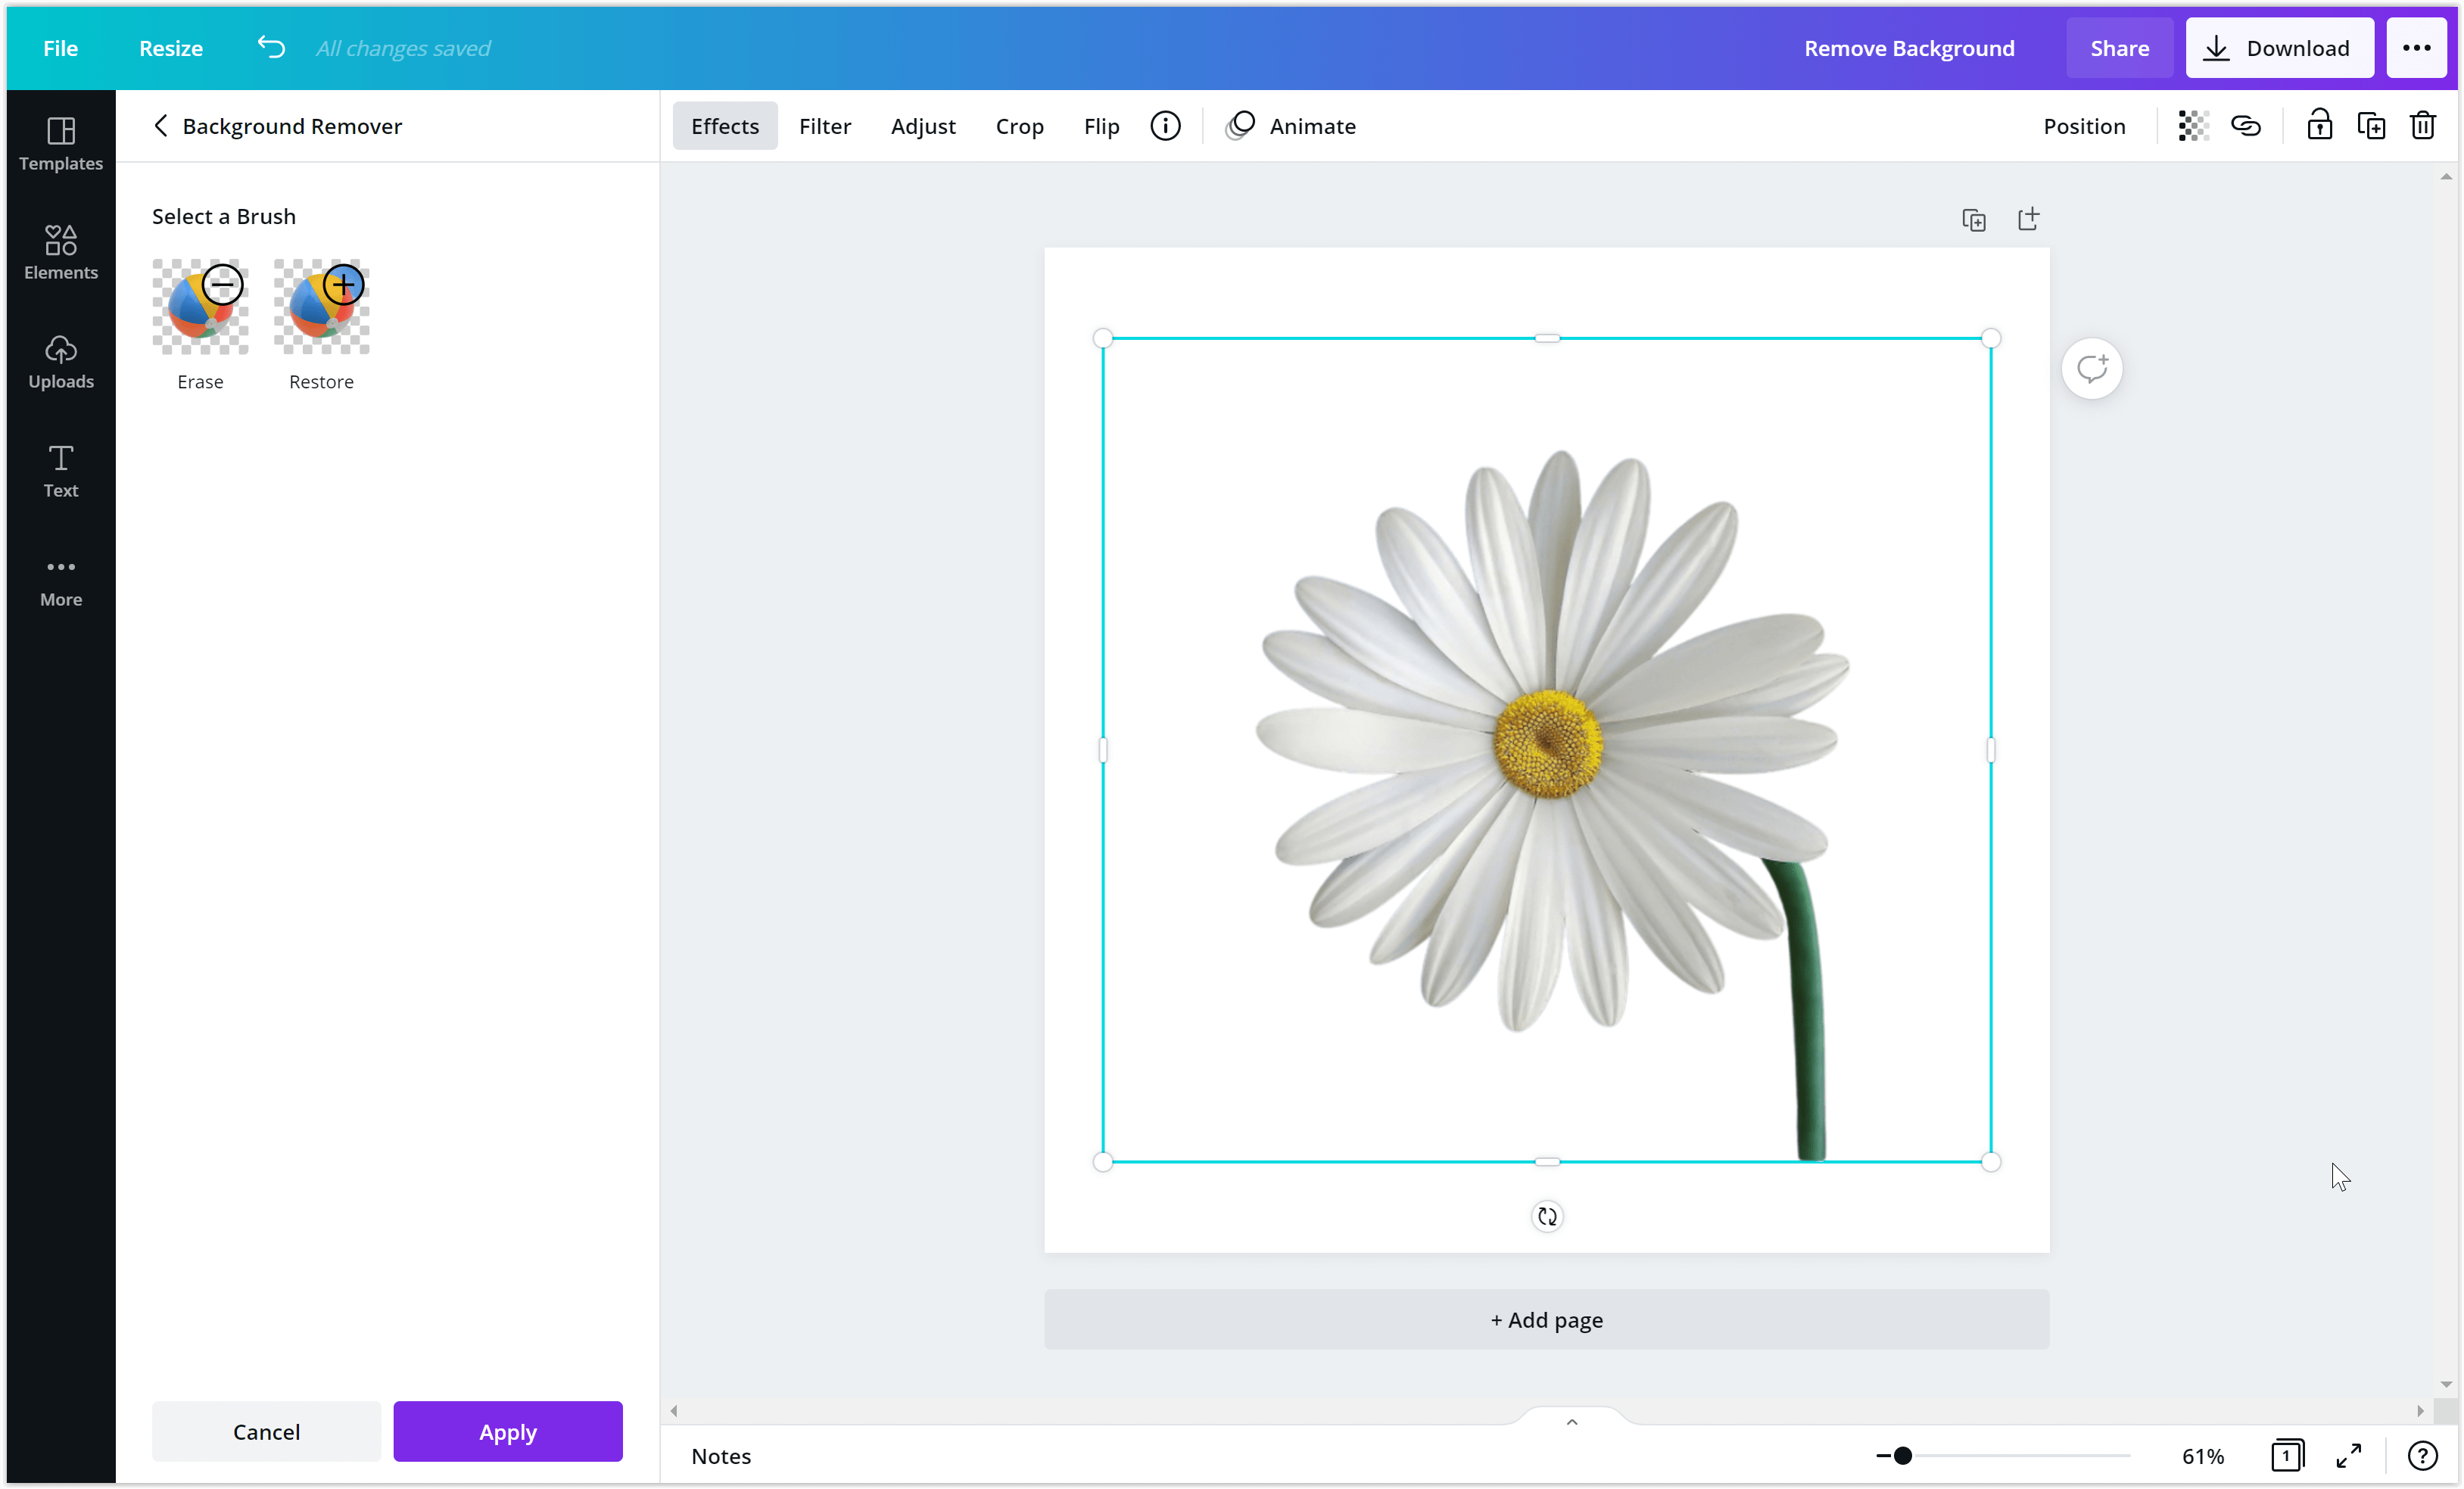 Background is removed in Canva